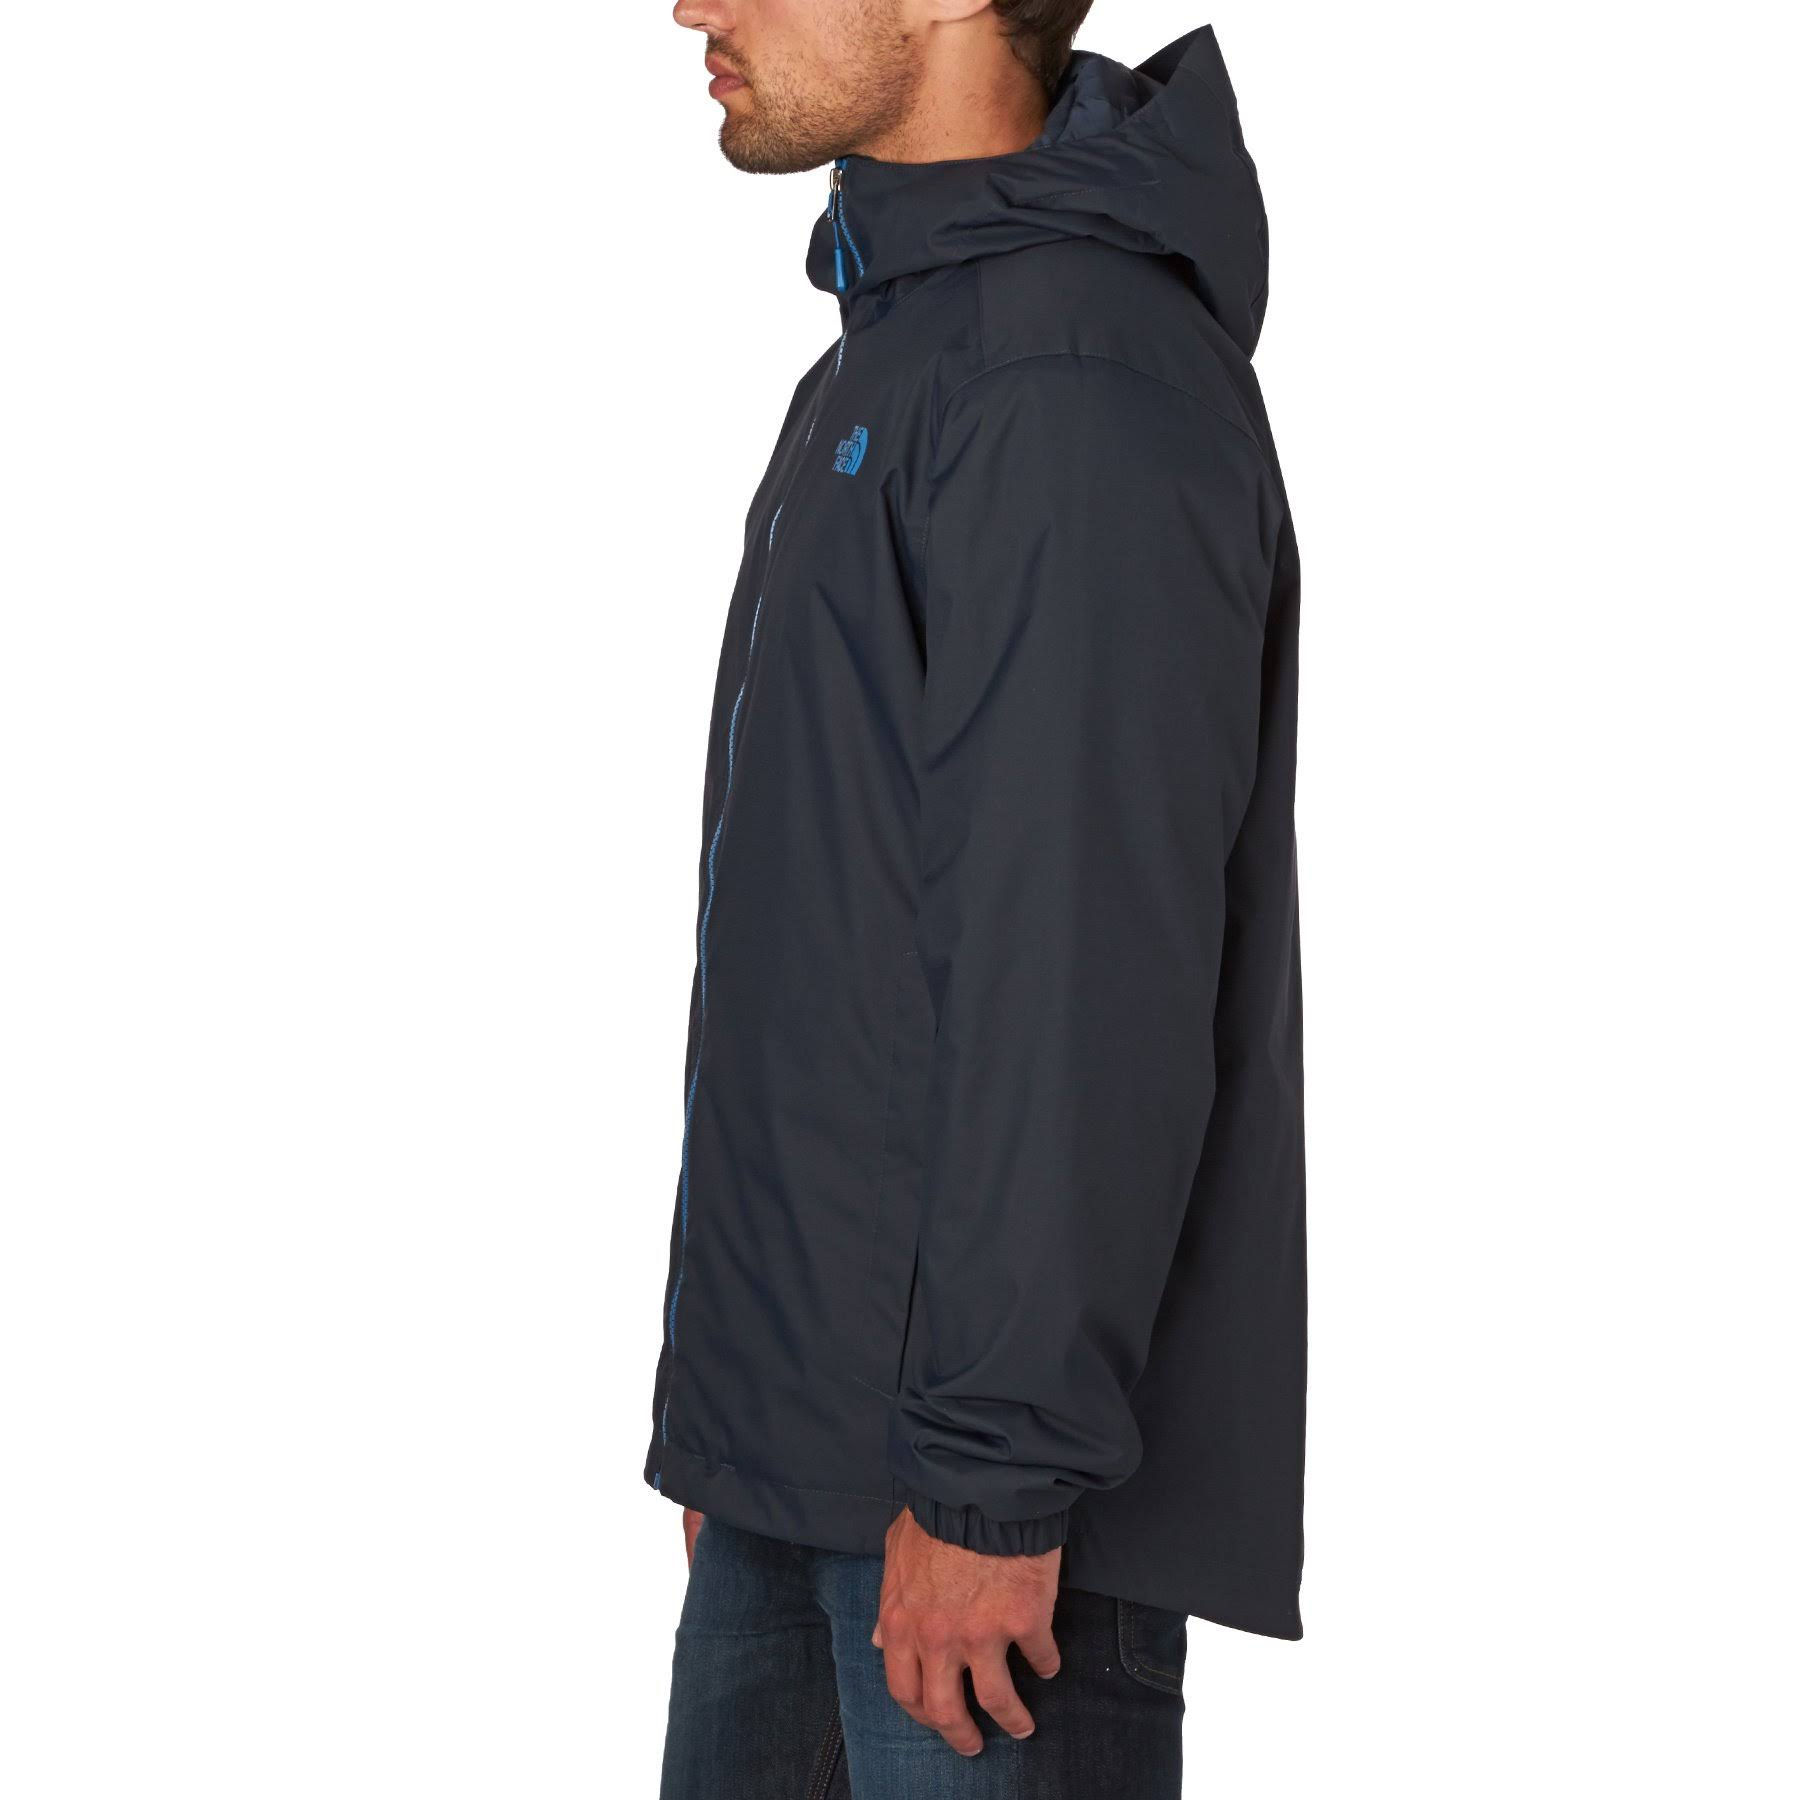 Blau Quest Jacke Navy The Xl North Urban Face Isolierte Sn14FXxqp